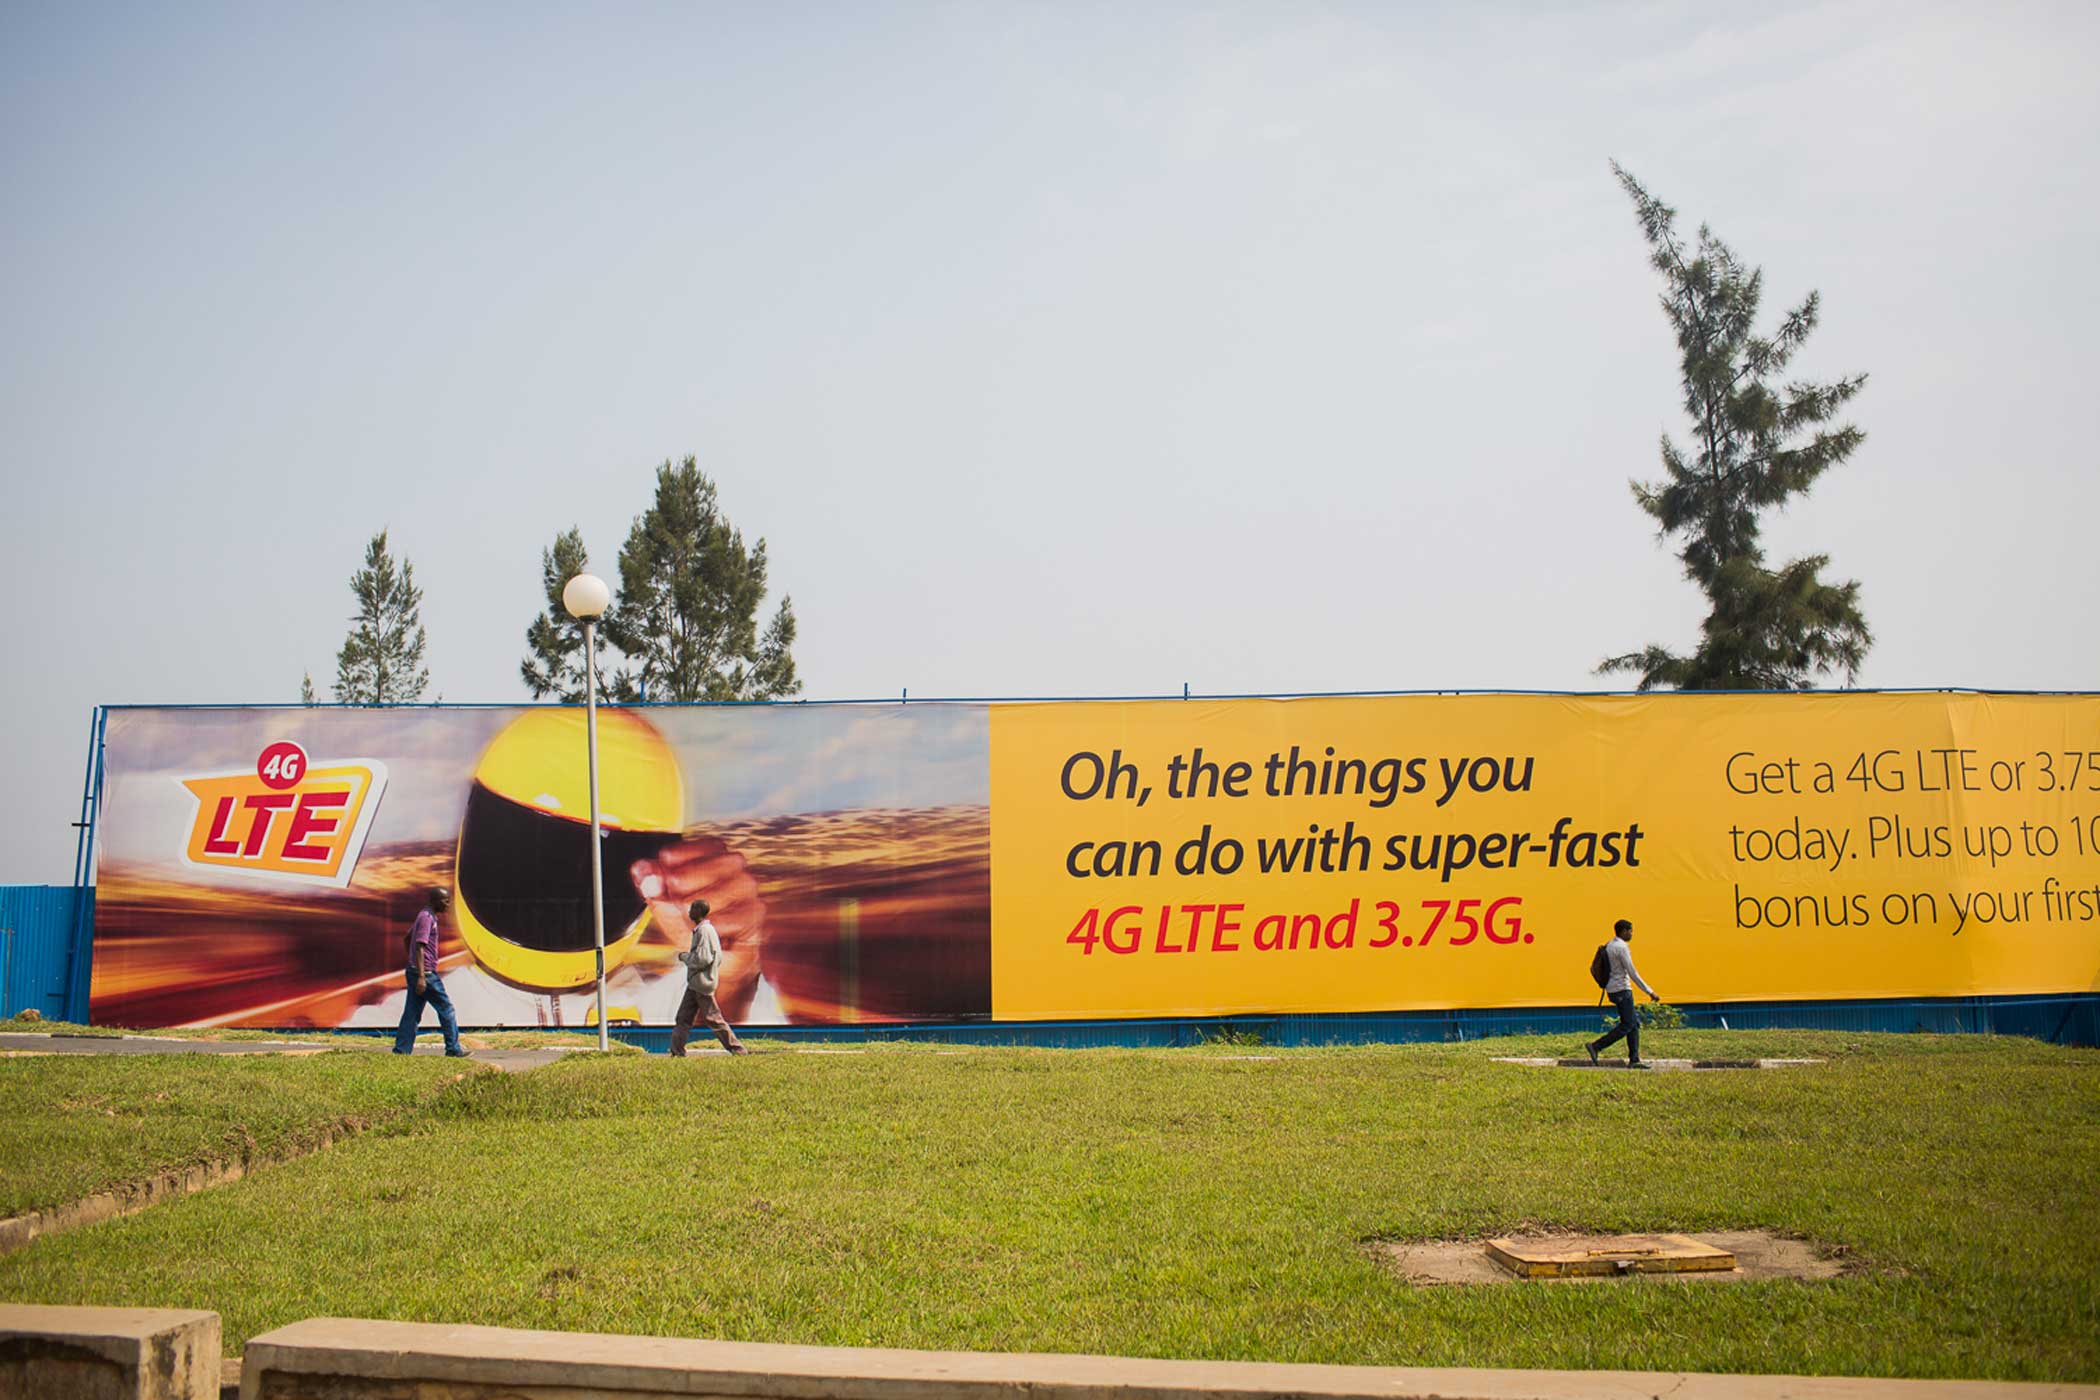 A government-sponsored fiber-optic cable expansion project was completed in 2011, improving telecommunication services throughout the country. Advertisements for phone service providors can be seen all over Kigali, even painted on family homes.